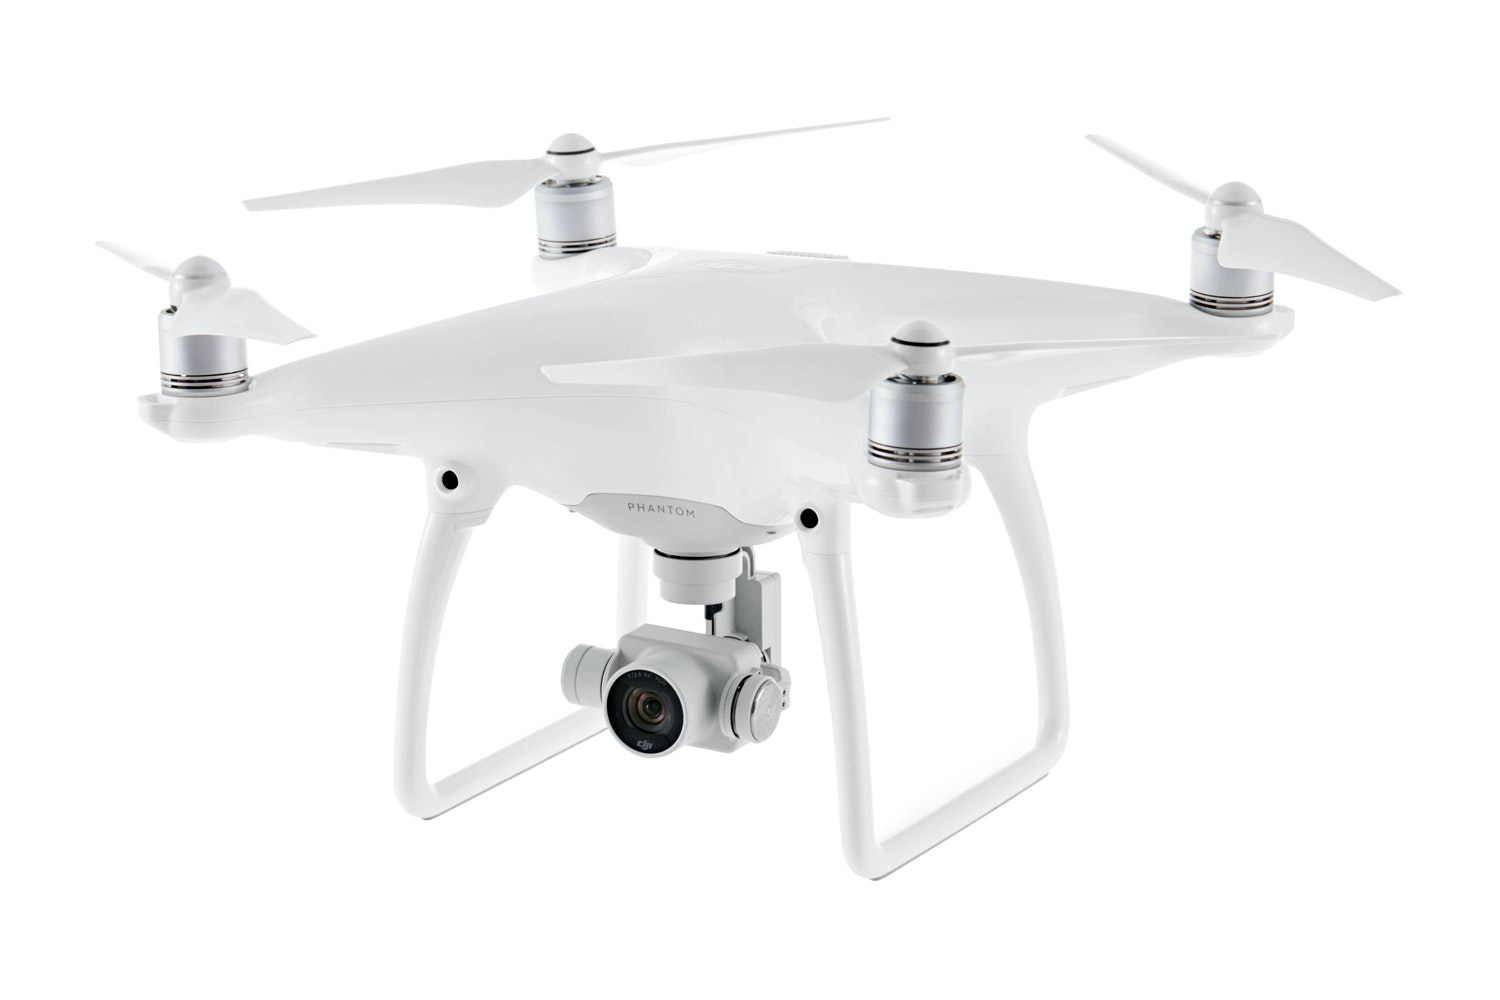 DJI Phantom 4 Advanced Drone | White